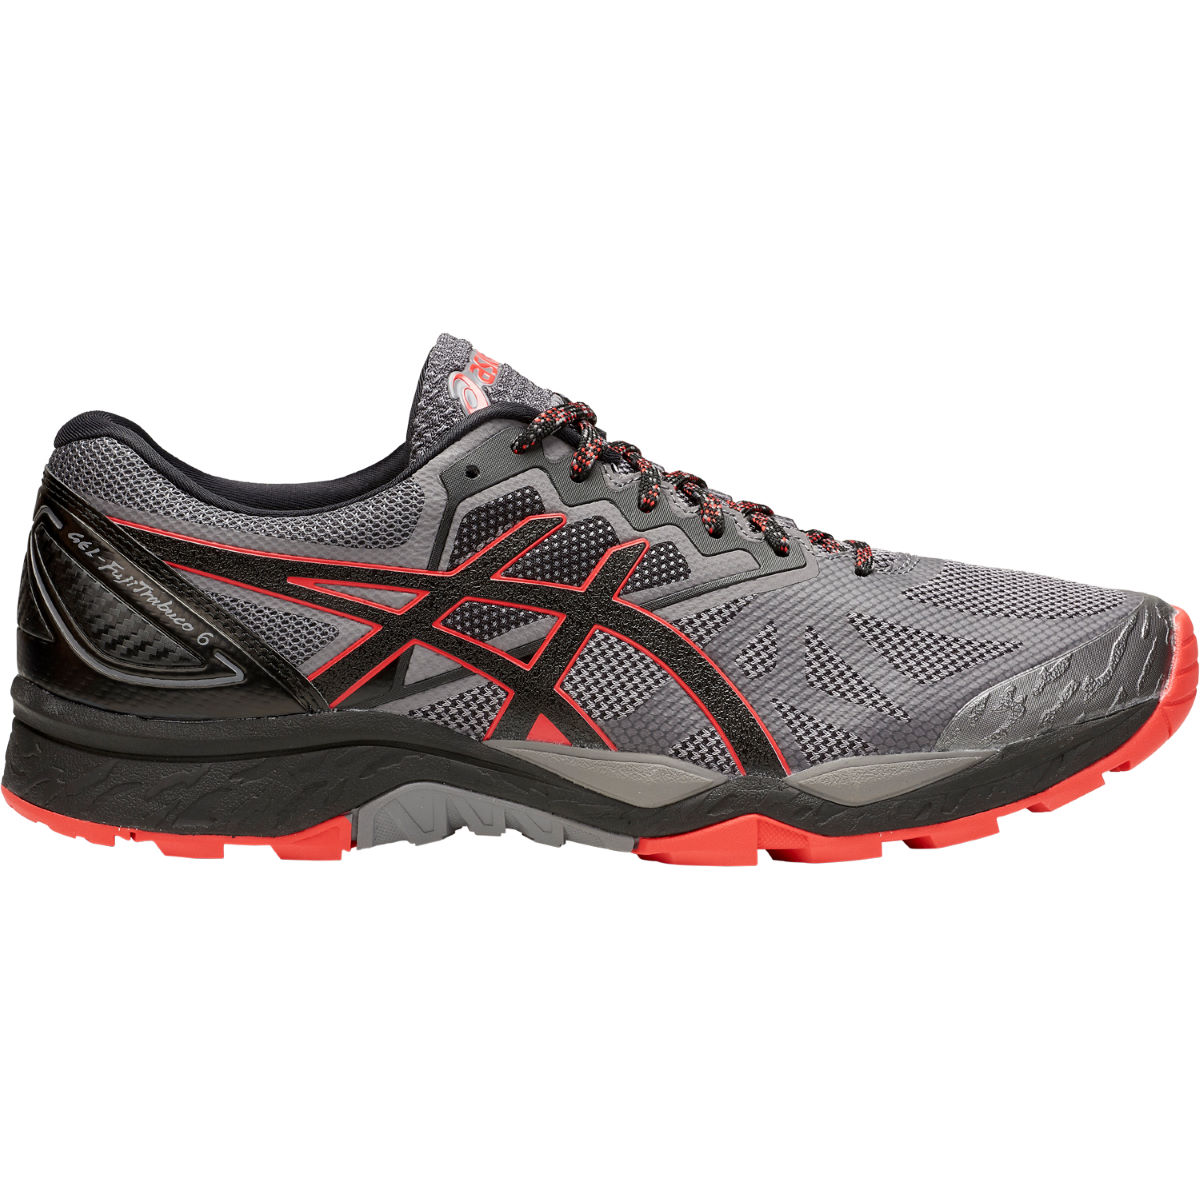 Chaussures Asics Gel-Fujitrabuco 6 - UK 7 Carbon/Red Alert